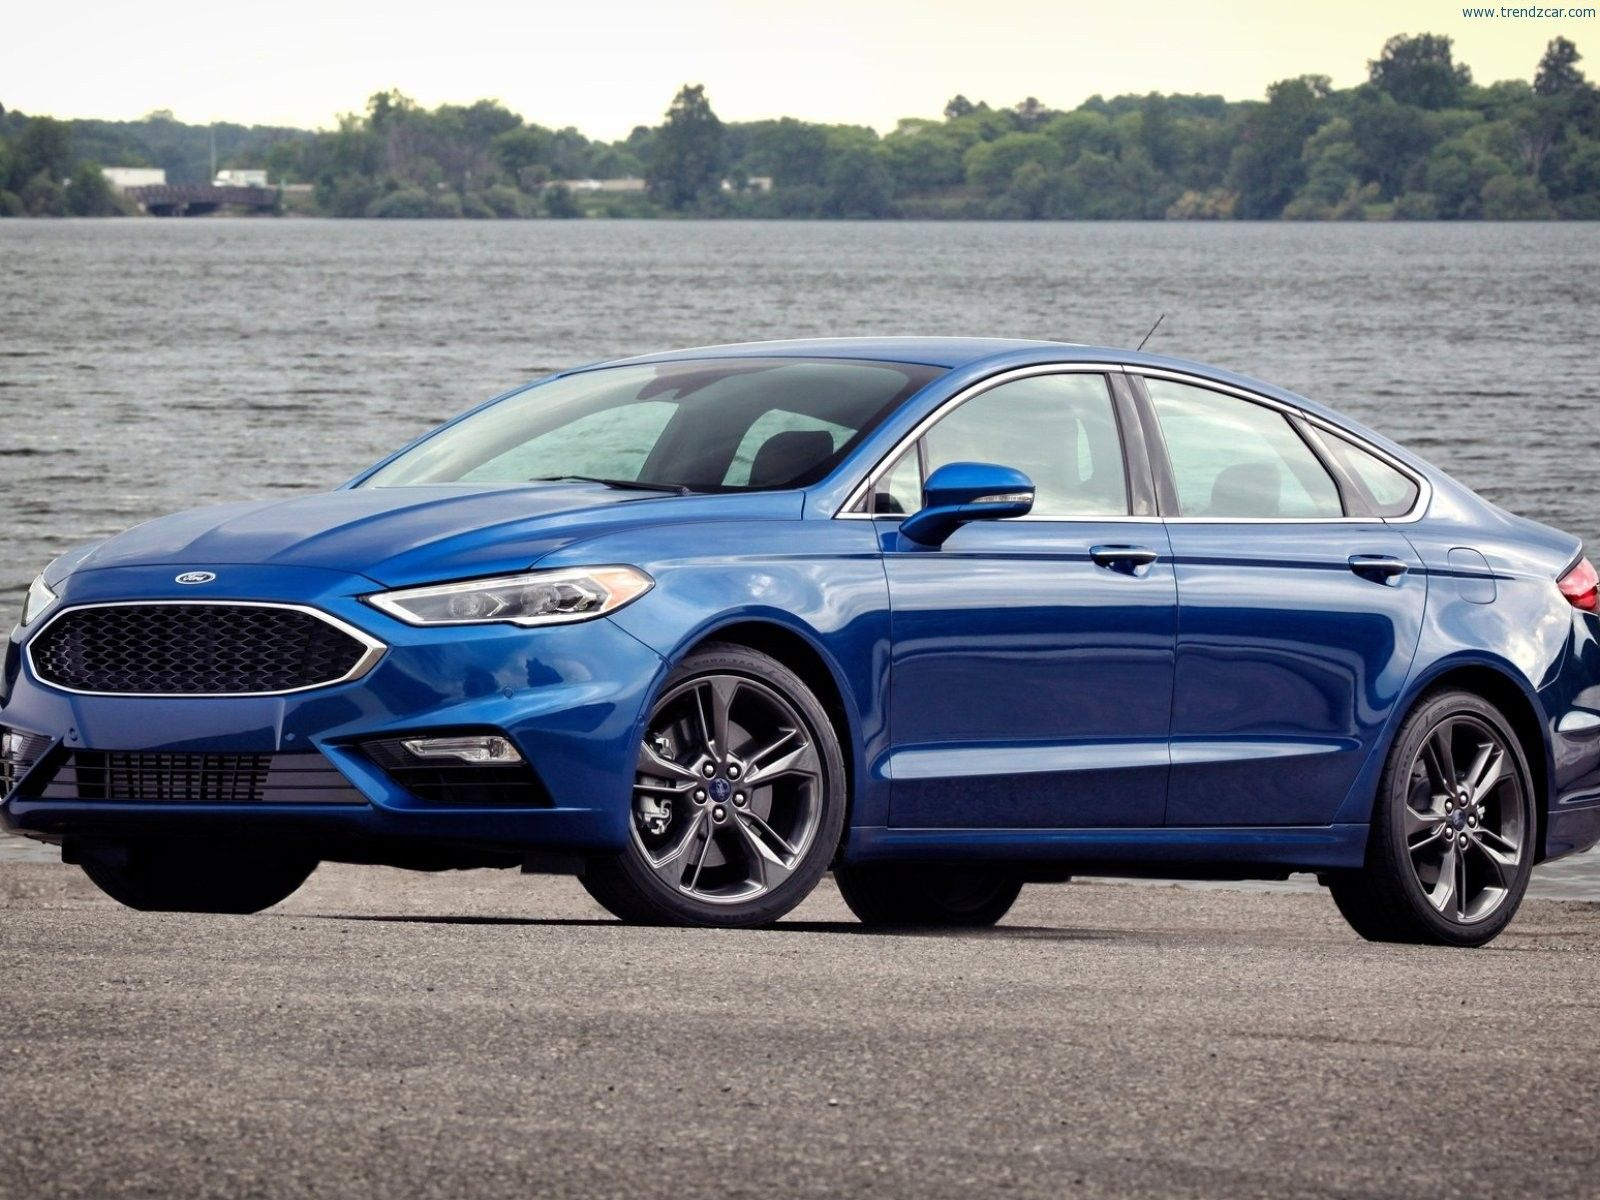 2017 Ford Fusion V6 Sport Ford Fusion Car Ford Ford Mondeo